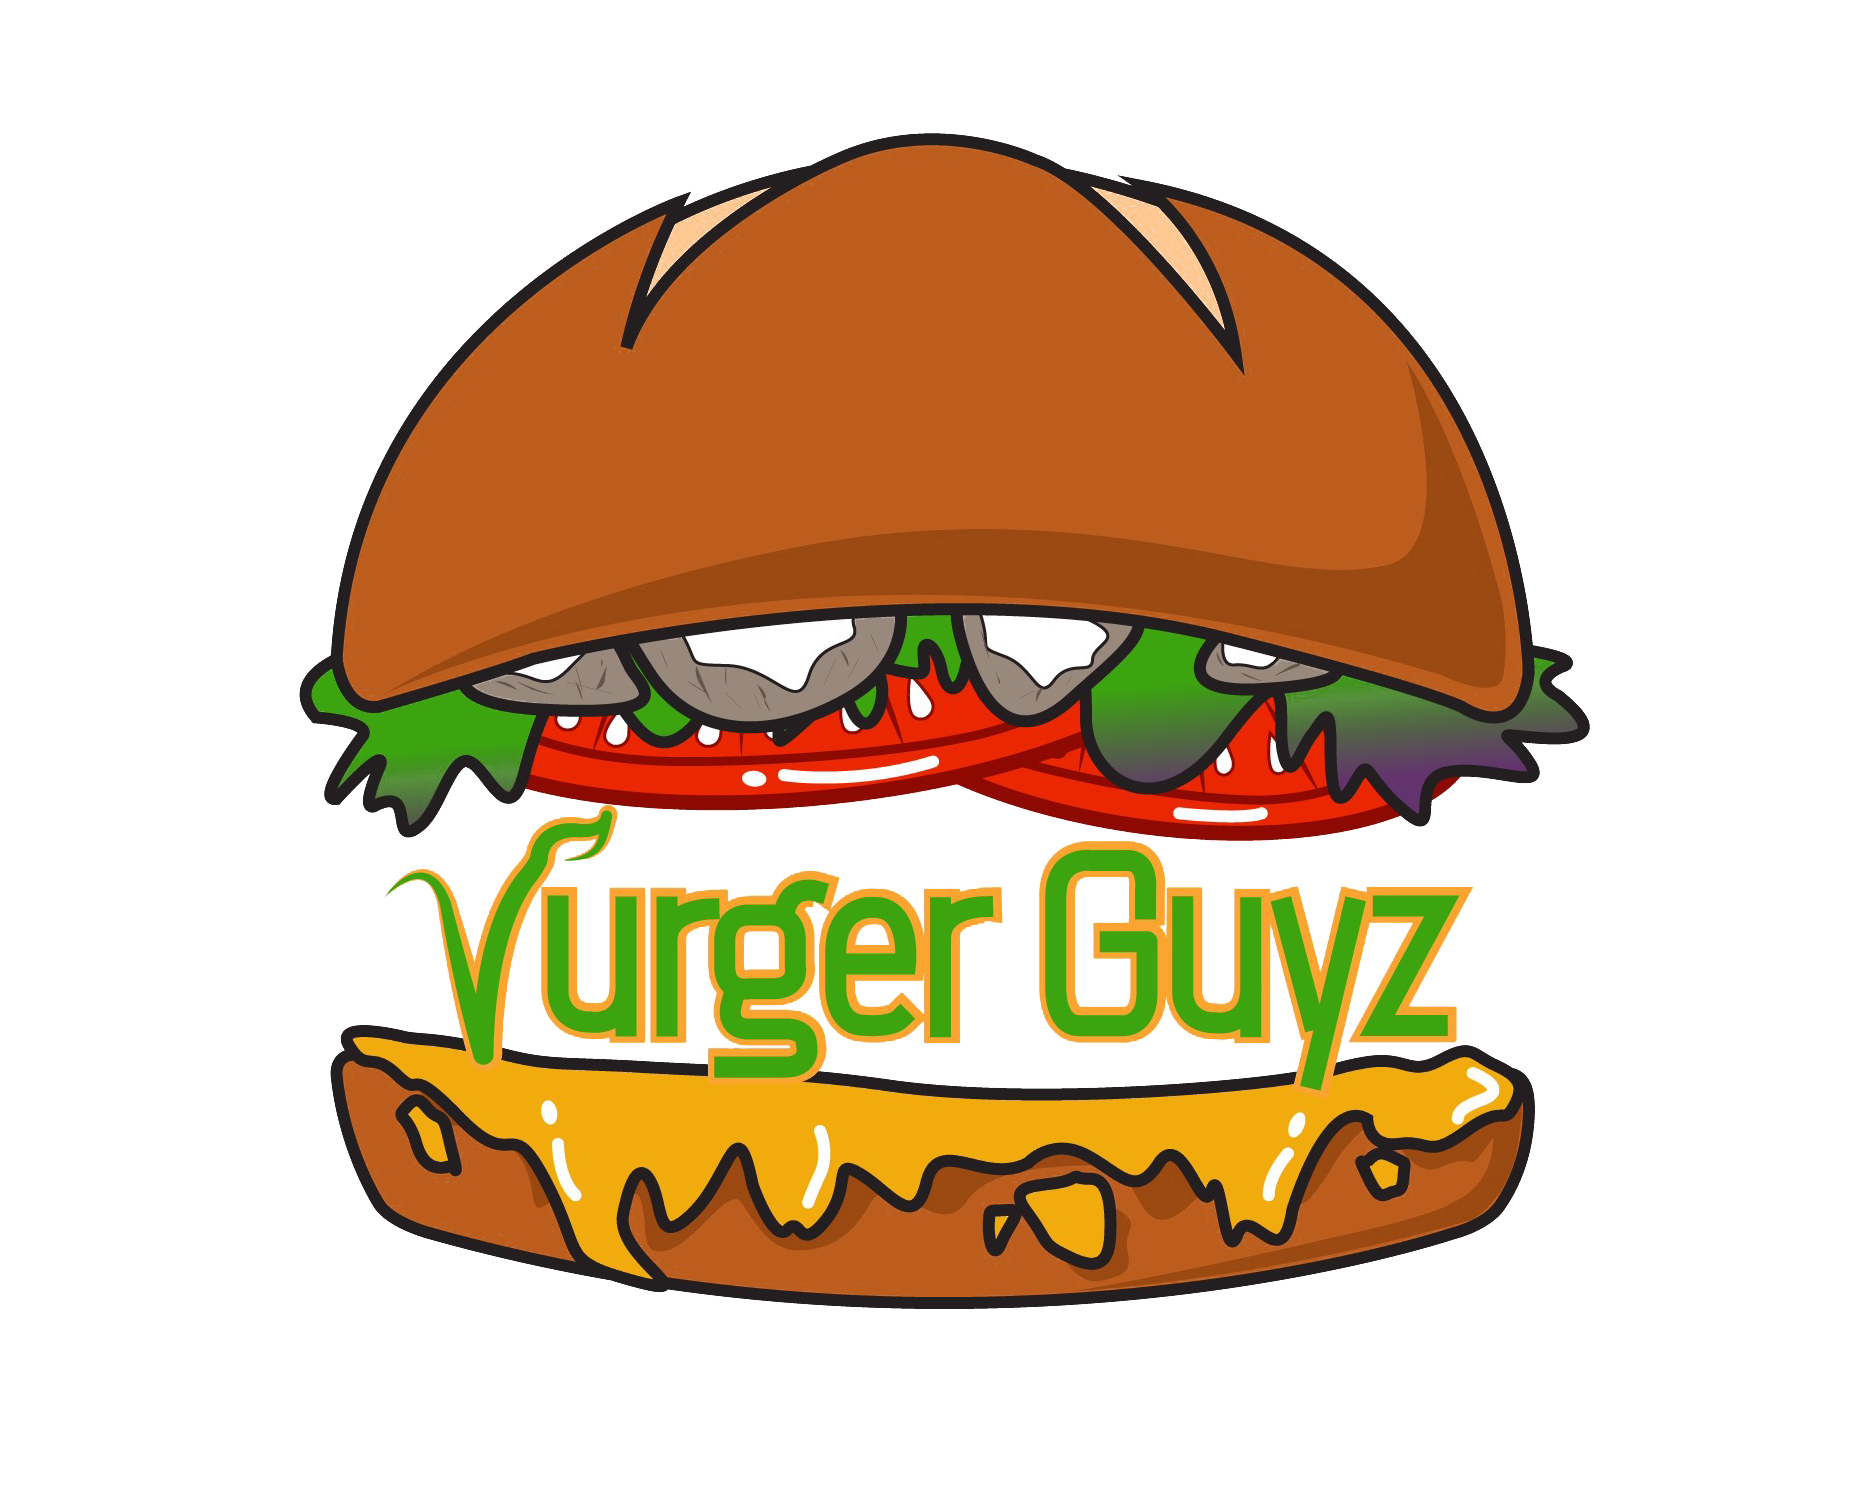 vurger-2 copy.png